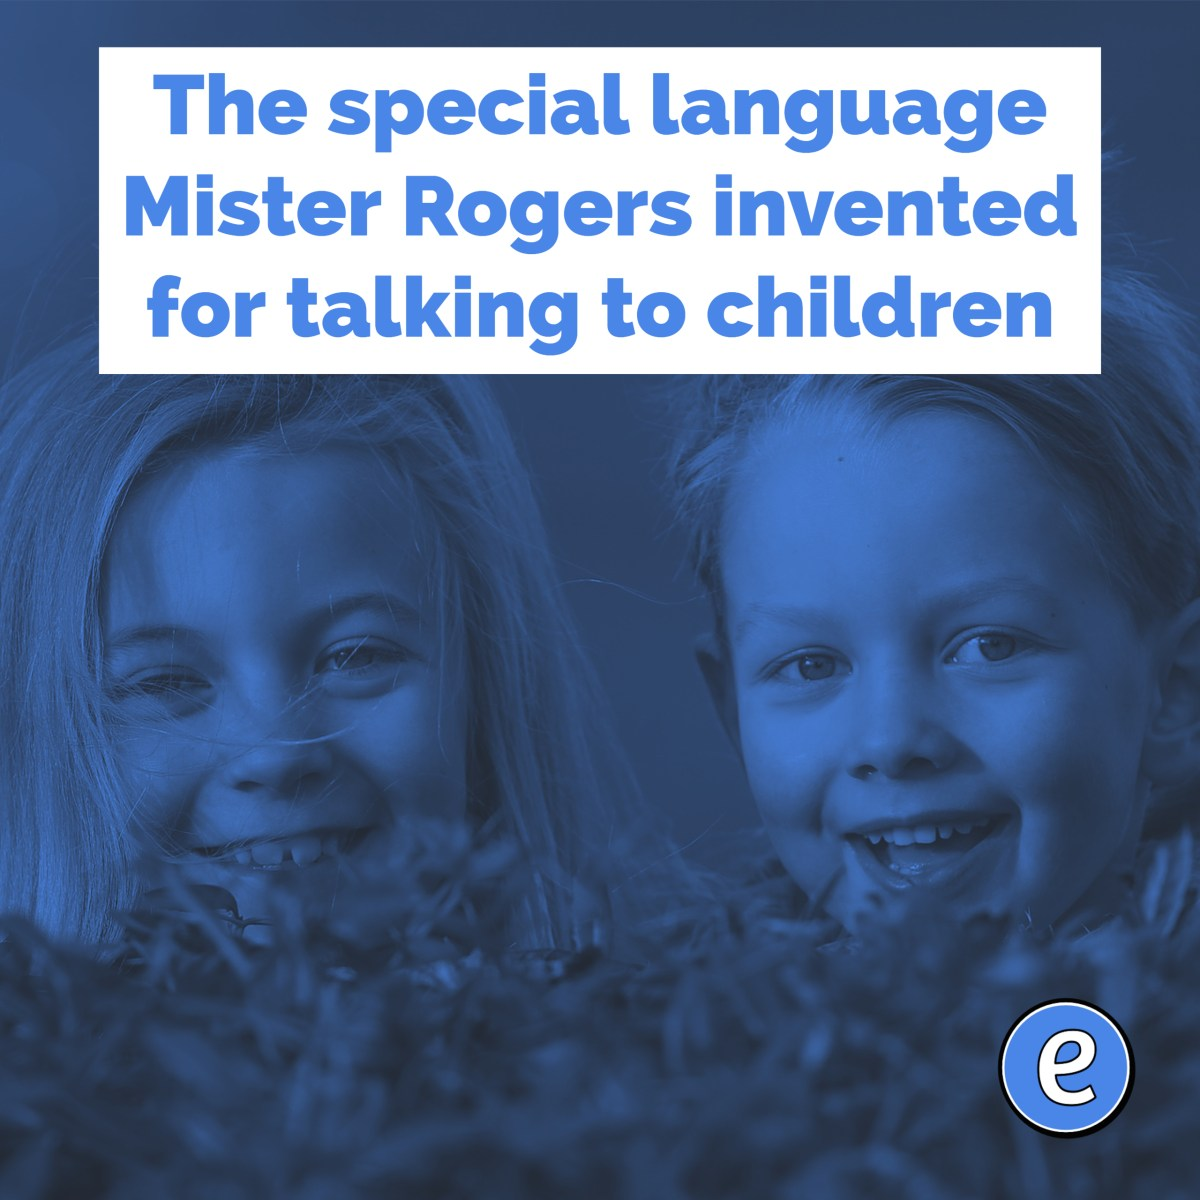 The special language Mister Rogers invented for talking to children